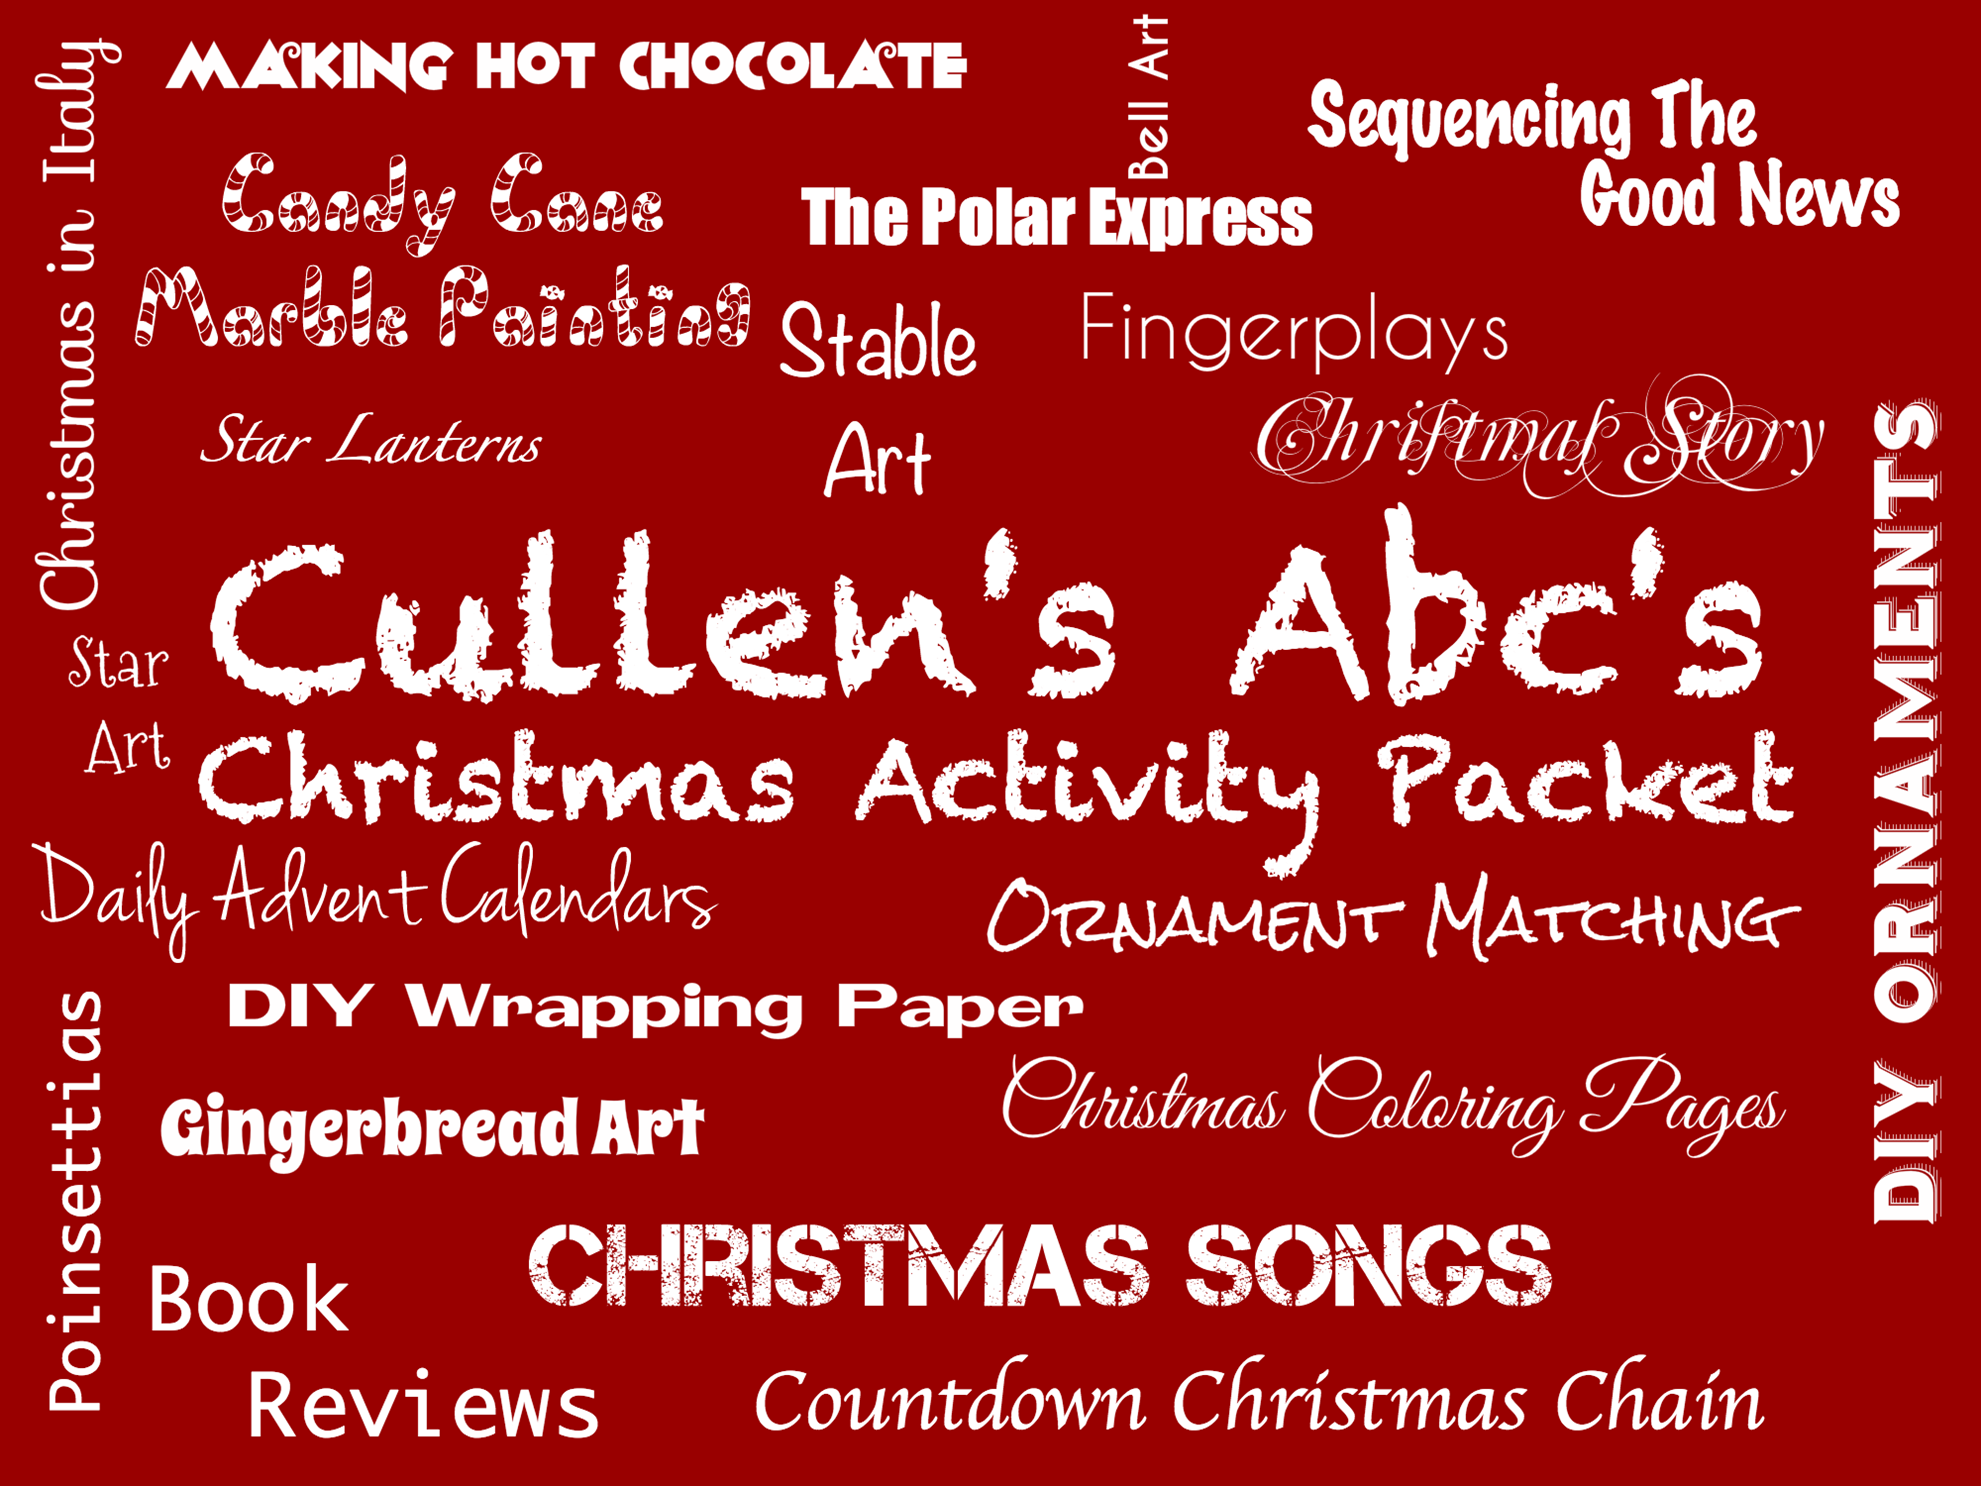 Christmas Activity Packet Image